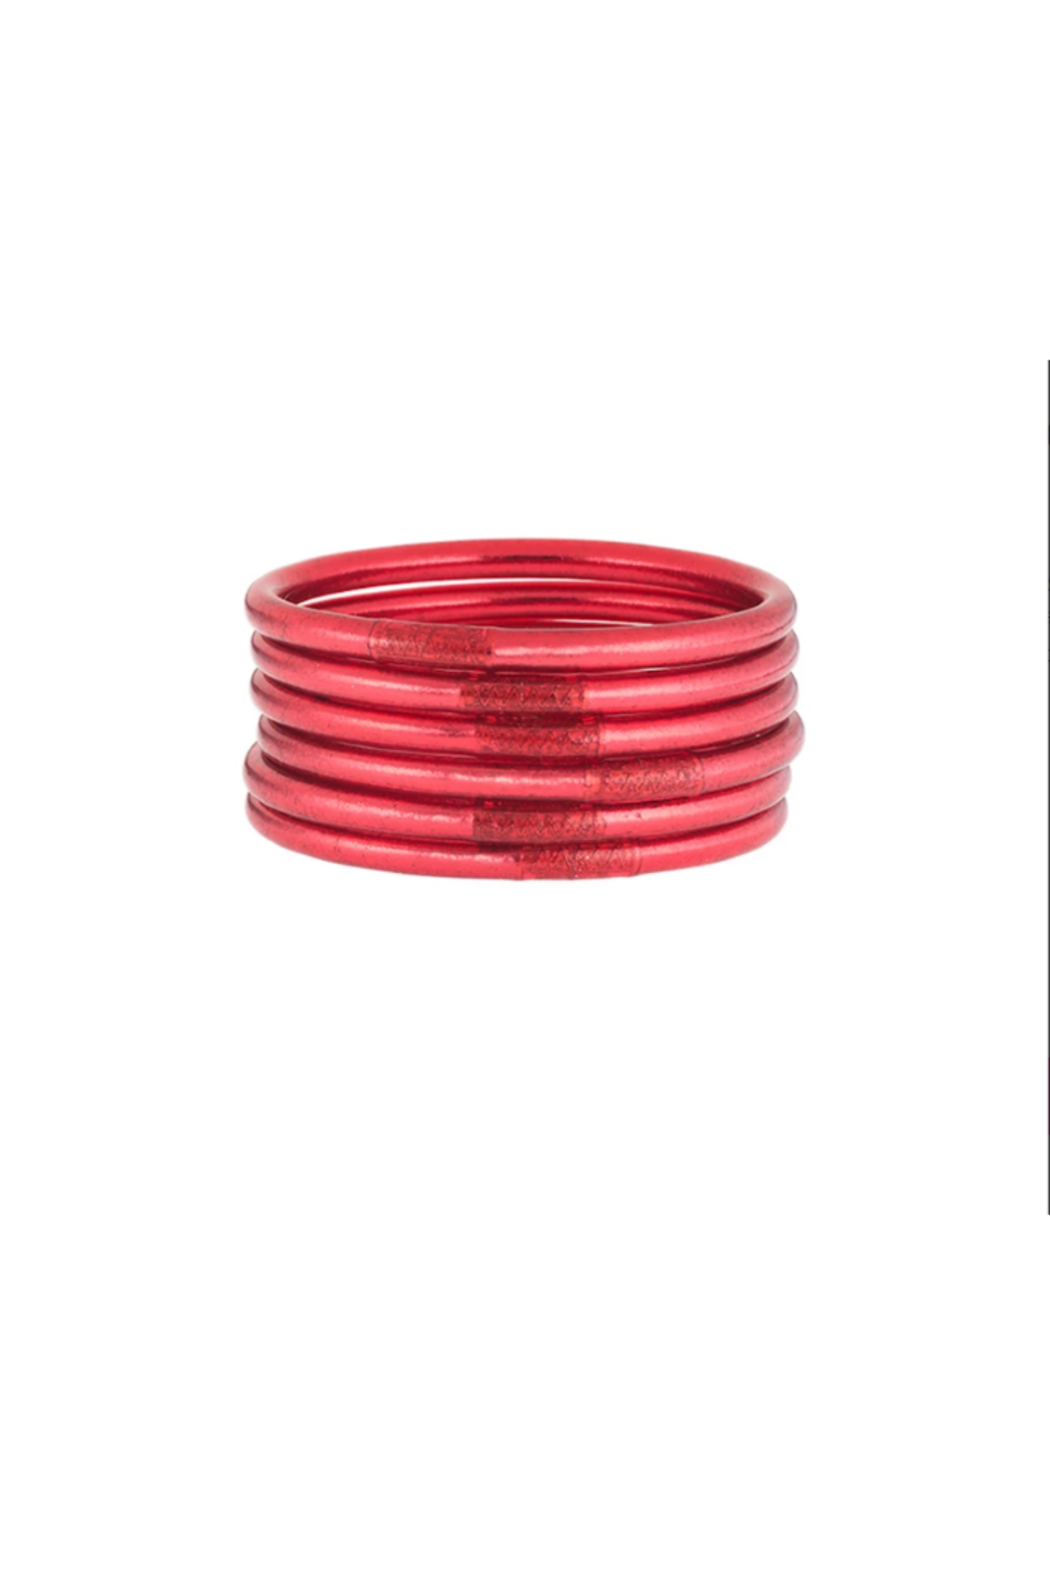 The Birds Nest DARK PINK ALL WEATHER SERENITY BANGLES-MEDIUM - Front Cropped Image